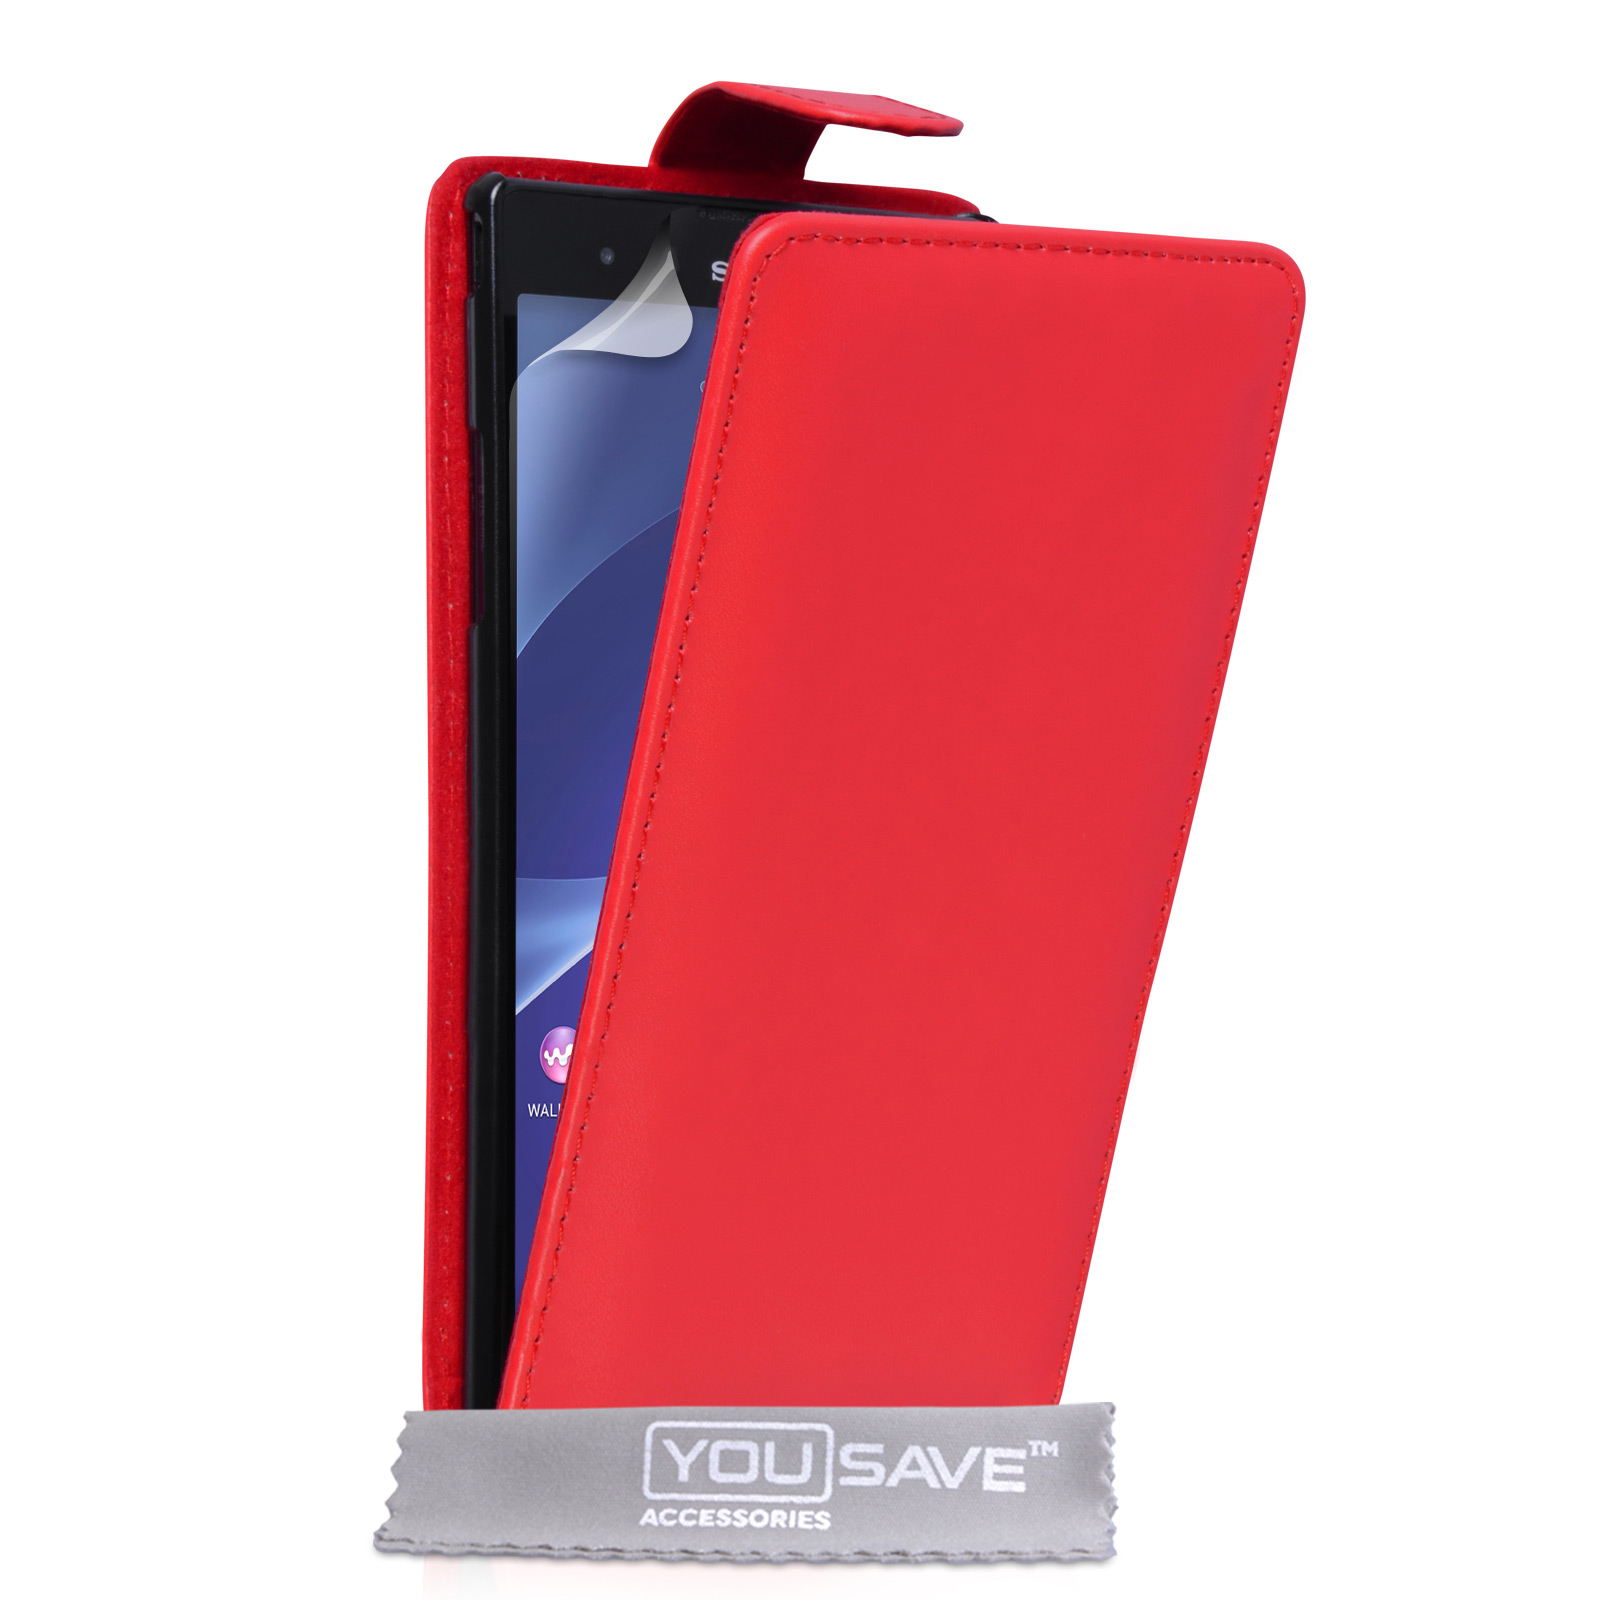 YouSave Sony Xperia T2 Ultra Leather-Effect Flip Case - Red